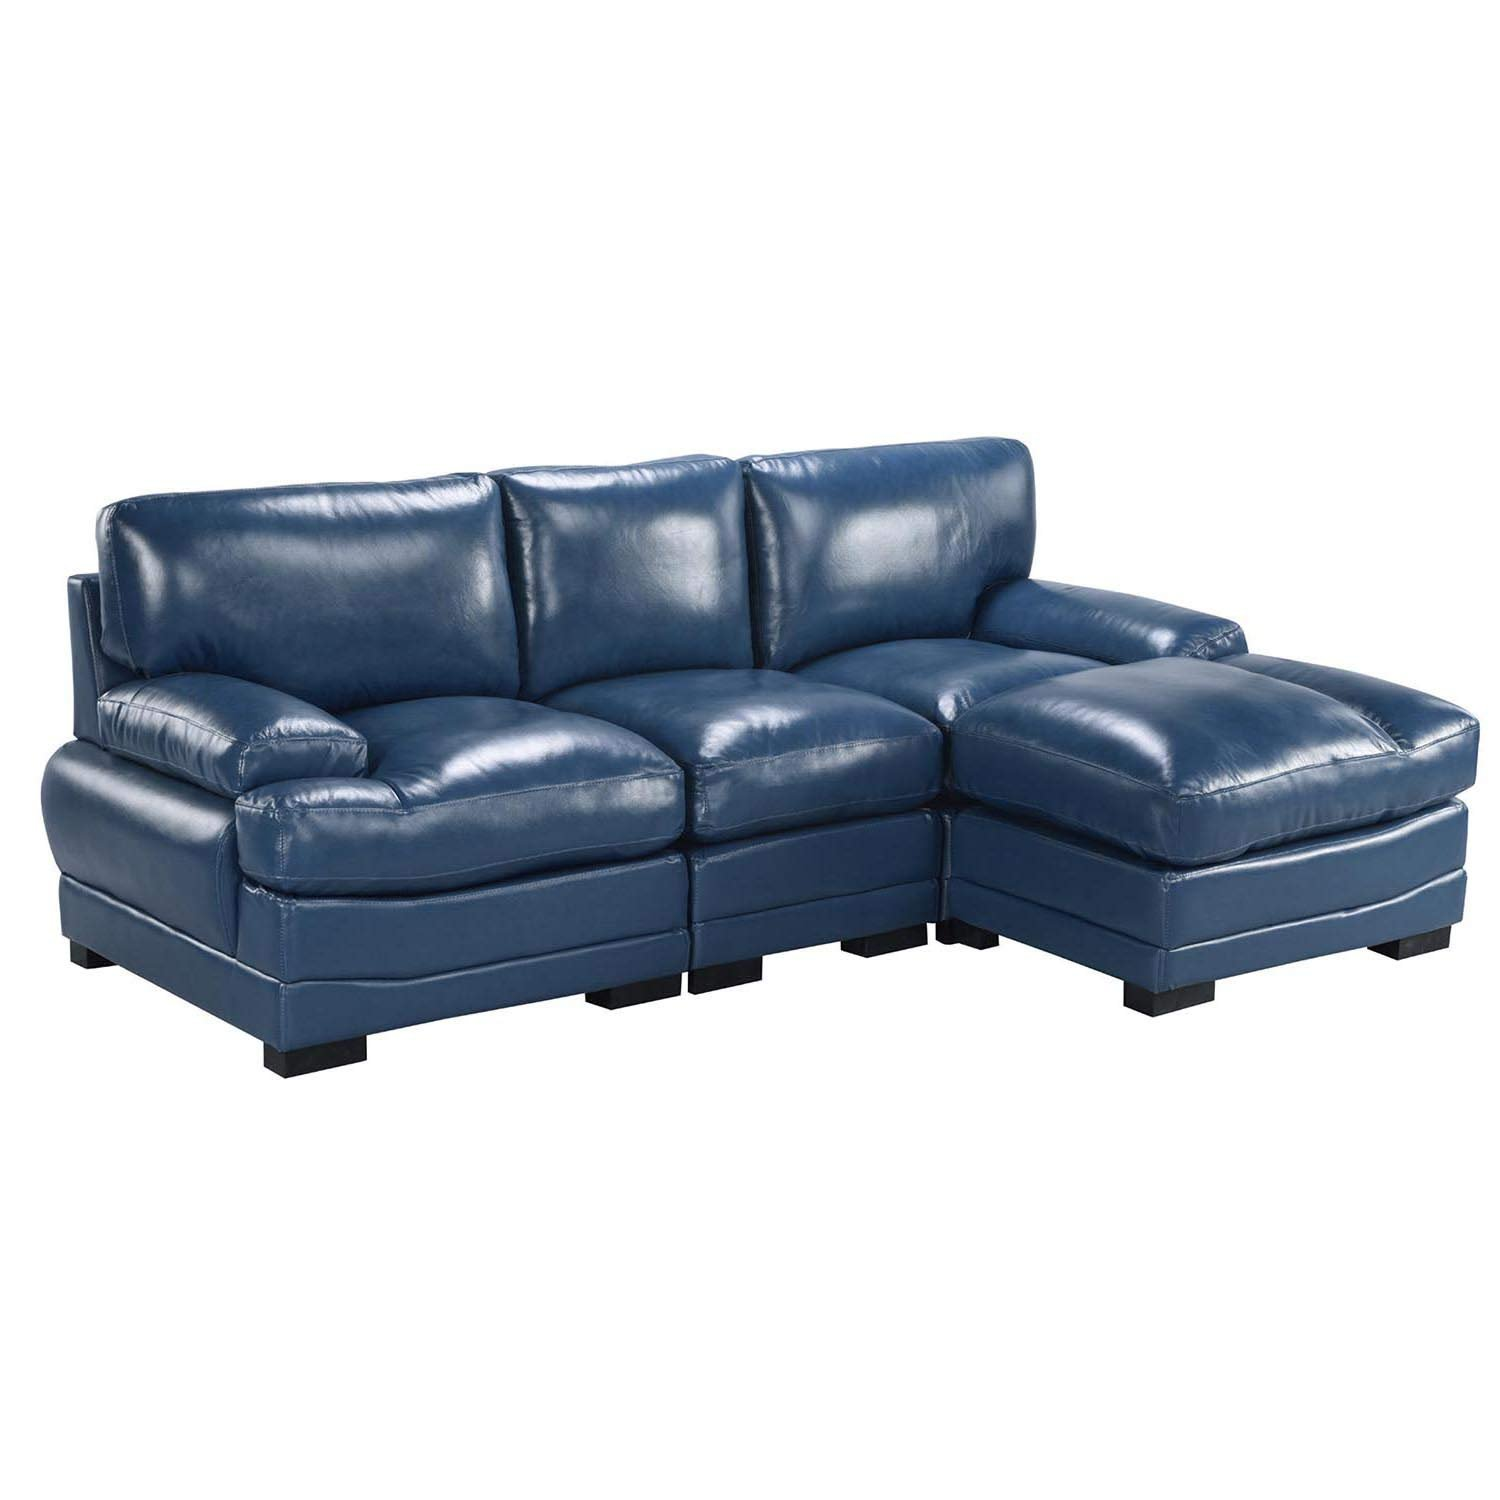 Details about Modern Right Facing Sectional Sofa Leather Match High Density  Seat Navy Blue